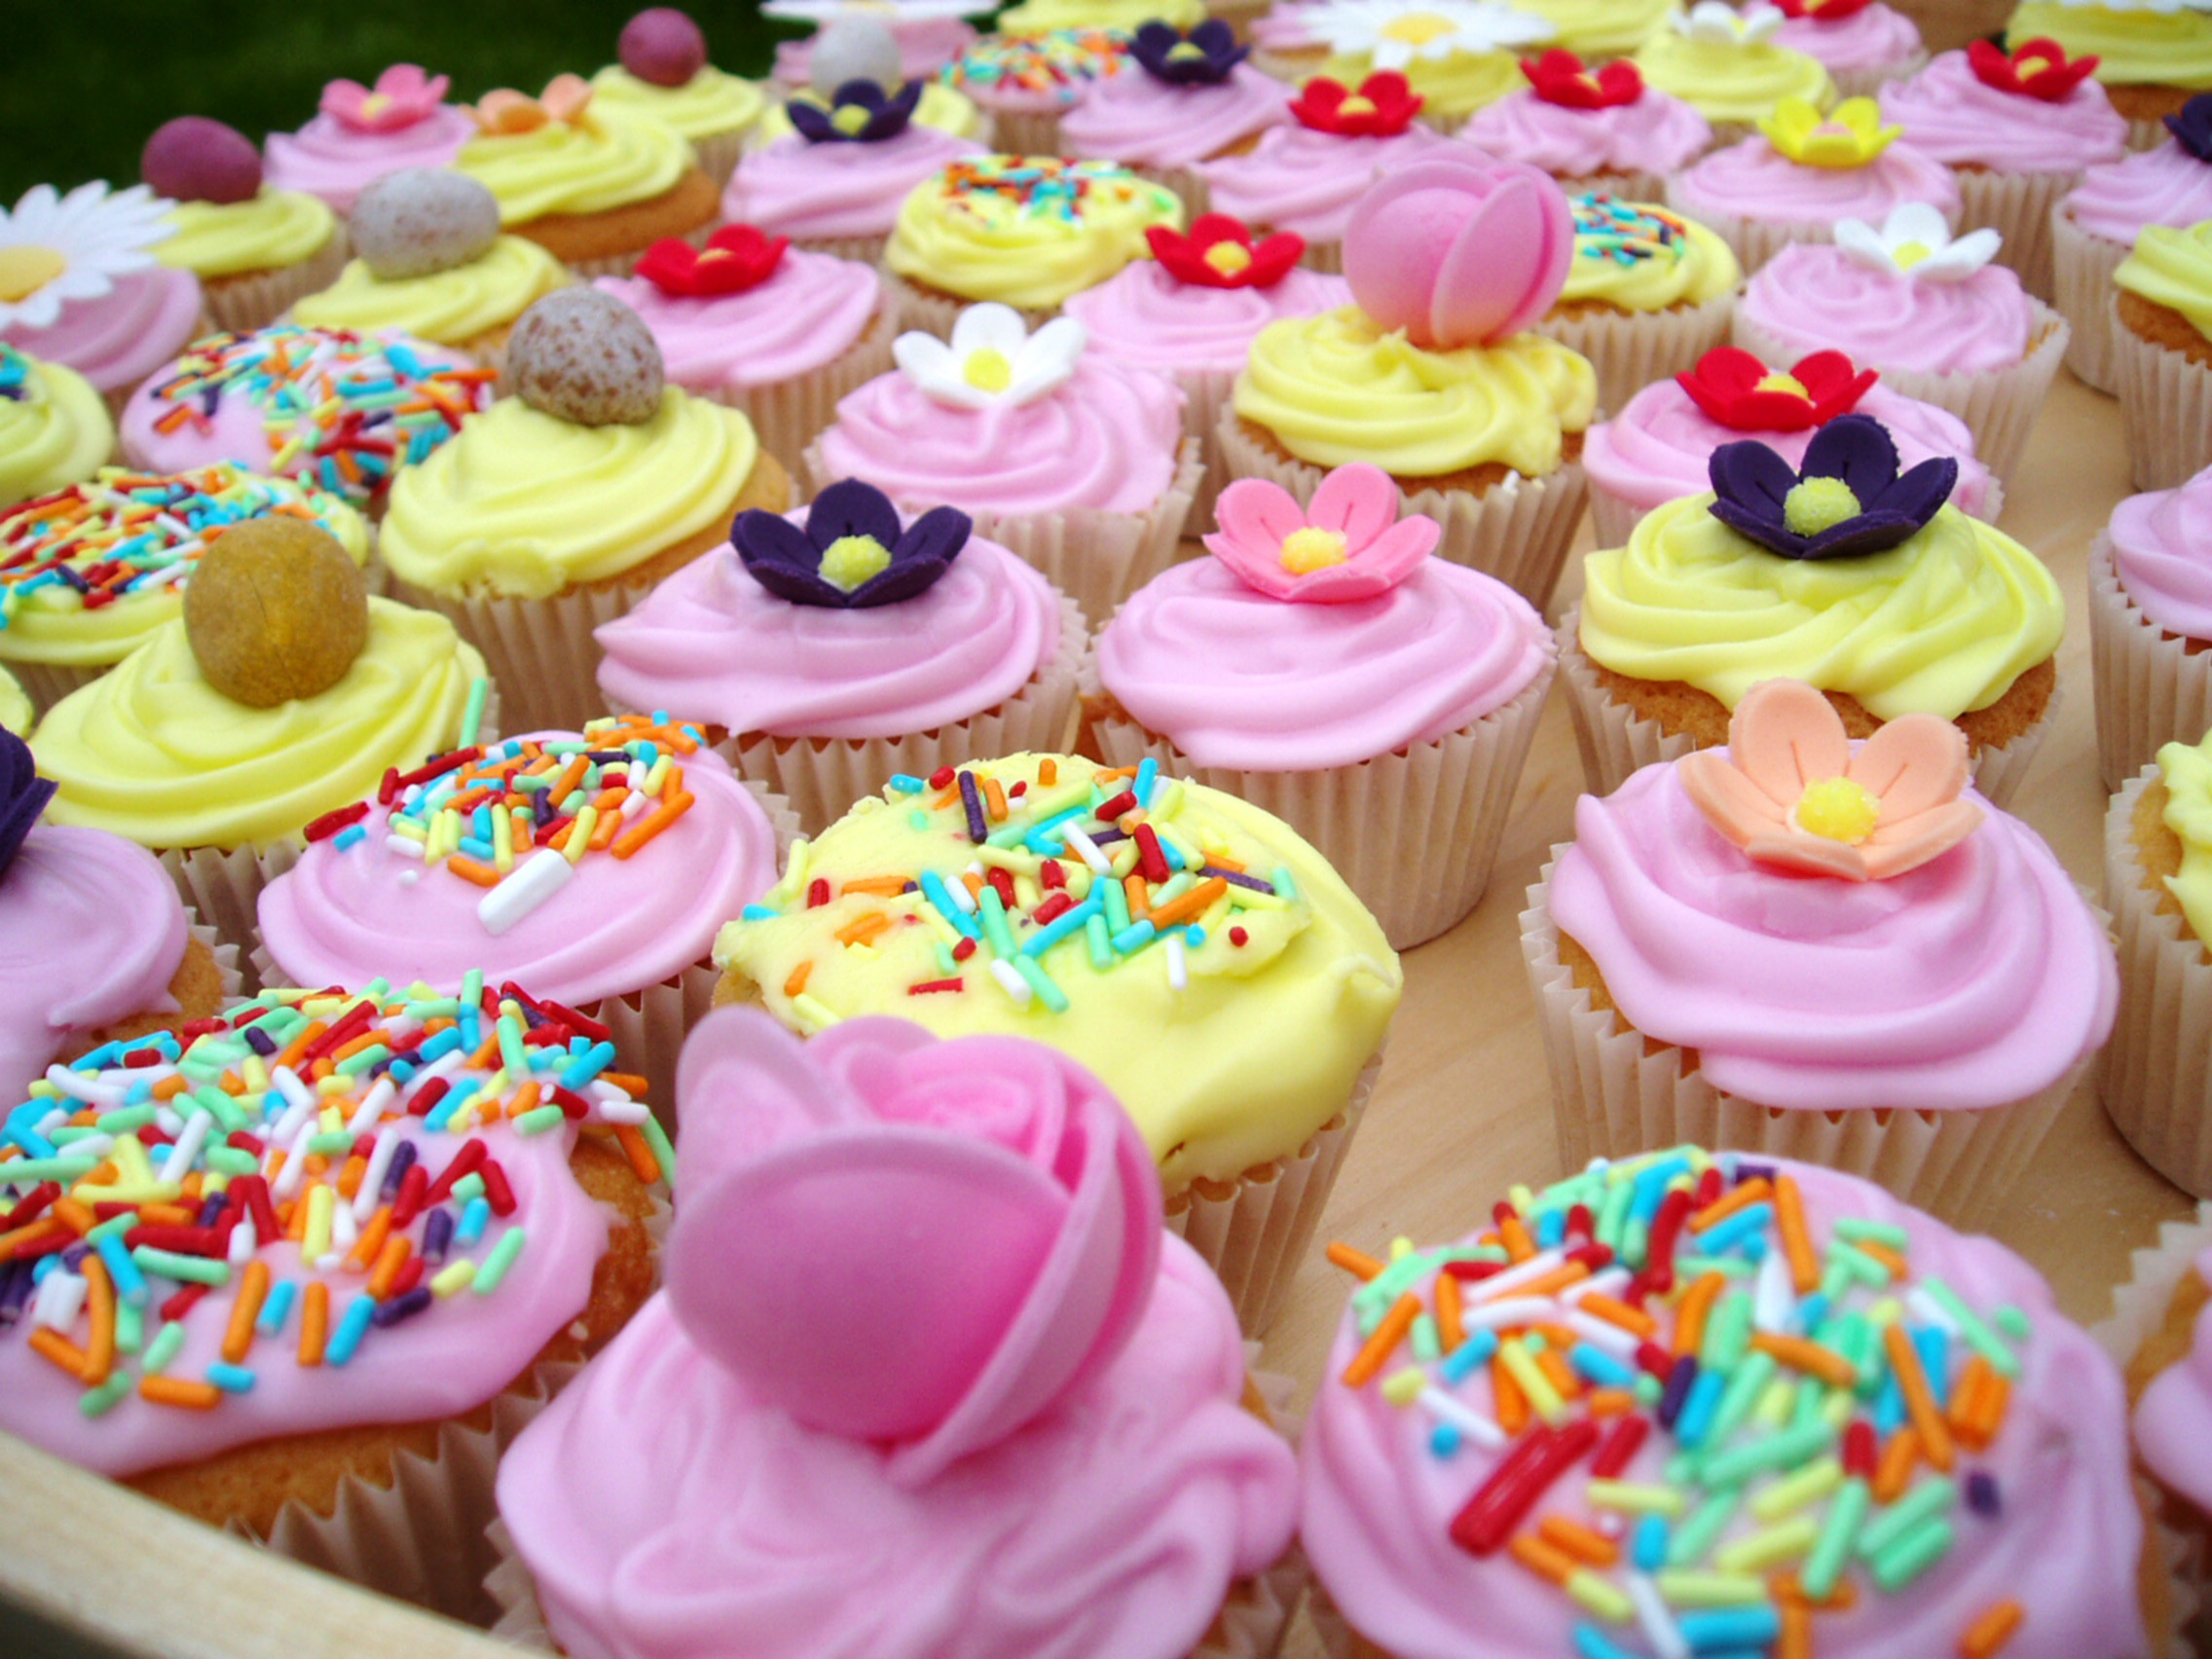 Res: 2272x1704, HD Wallpaper | Background Image ID:1494.  Food Cupcake